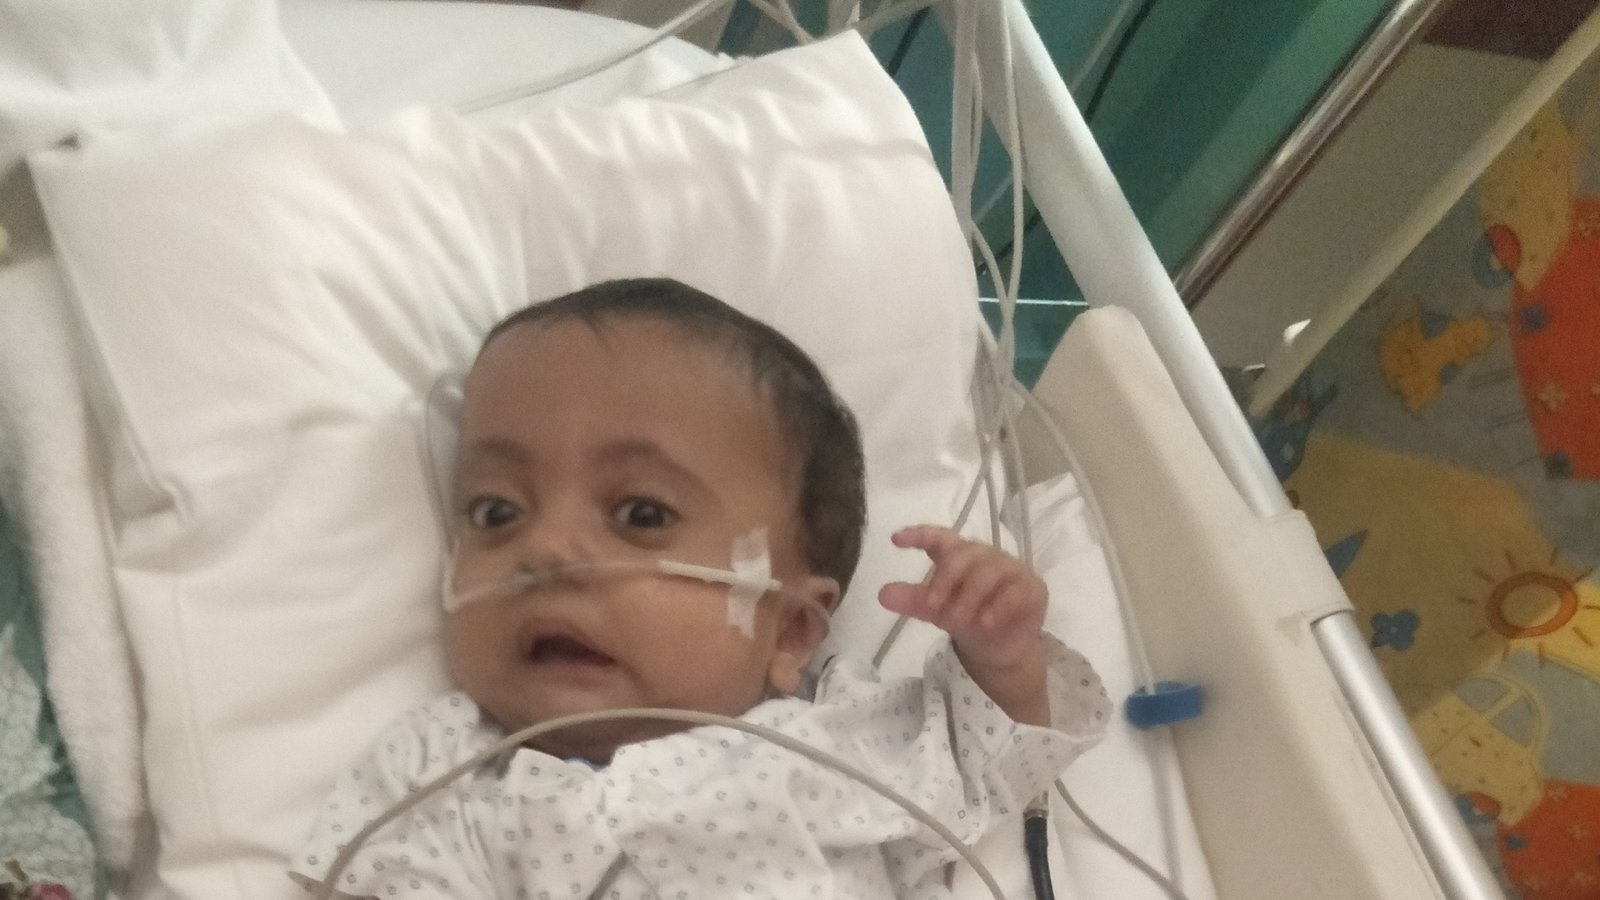 Petition Mercy Appeal For Treatment Of My 10 Month Old Son Of His Rare Disease Osteopetrosis Change Org